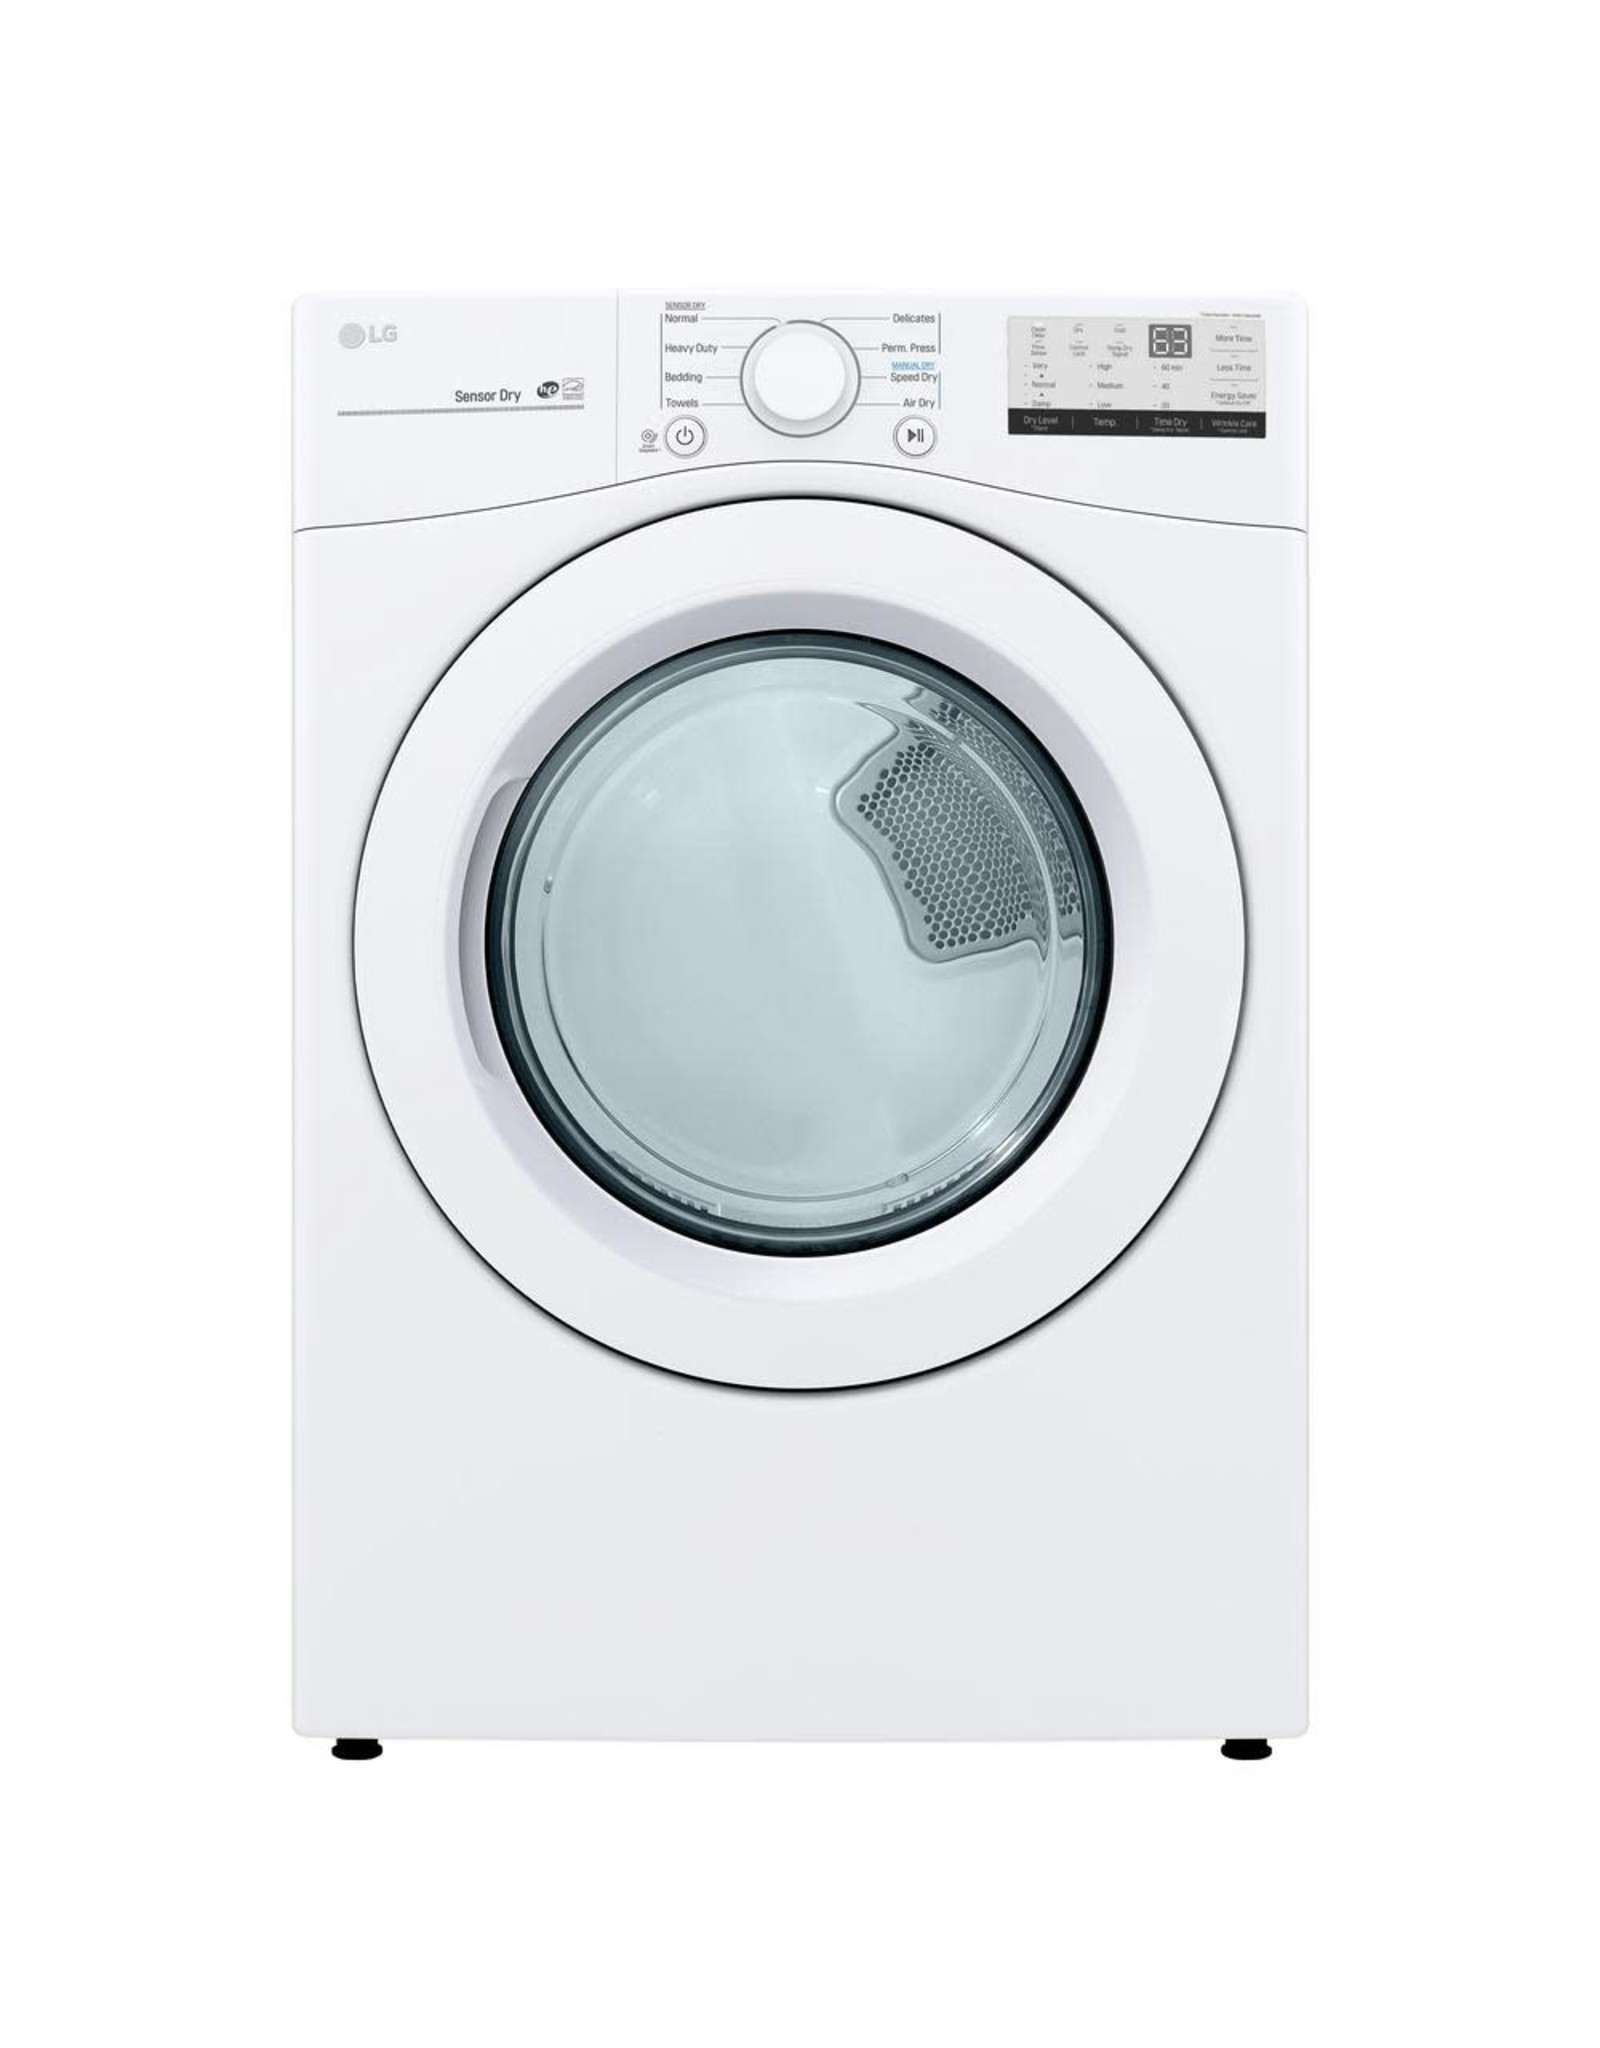 LG Electronics DLE3400W 7.4 cu. ft. Smart White Electric Vented Dryer with Sensor Dry